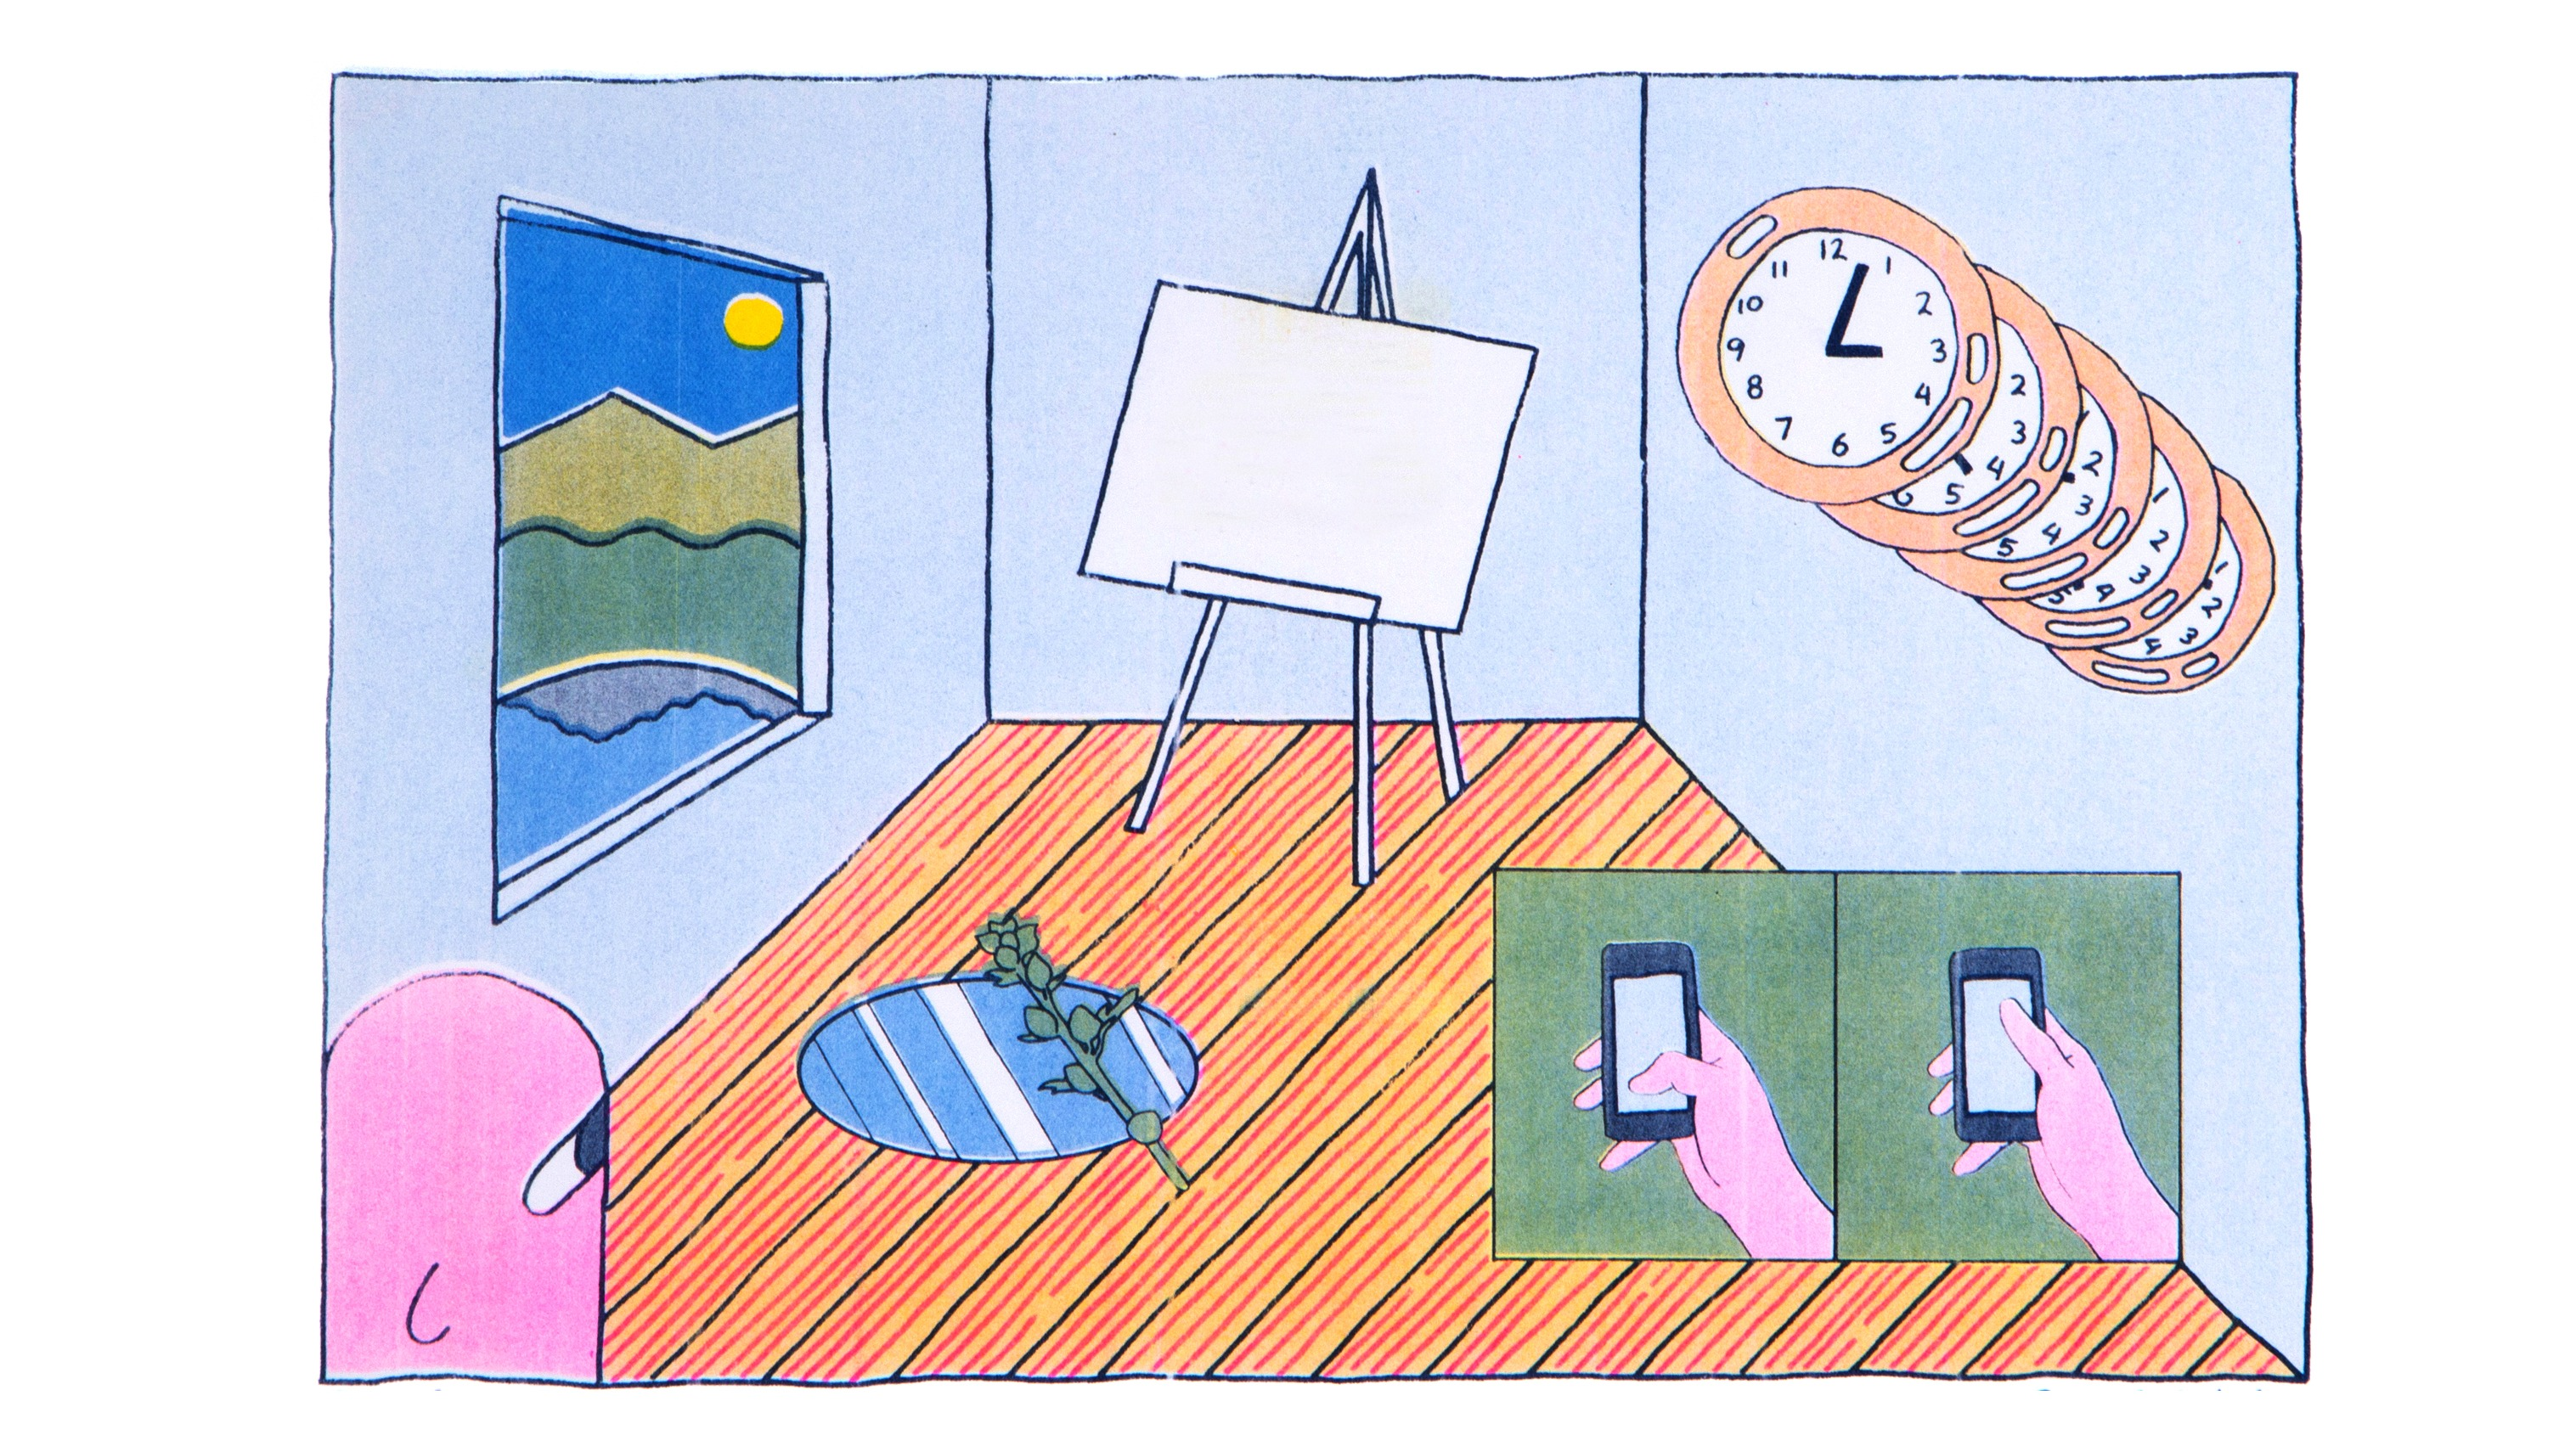 Risograph print of a drawing of an interior scene. The walls of the room are light blue, the floor is hardwood. Out the window to the left it is daylight. The face in the bottom left is content. There is a mirror on the floor with a plant over it. There is a 2-panel comic in the bottom right with a thumb scrolling on a phone. There is a series of clocks over the 2-panel comic. in the center of the room is a blank canvas.